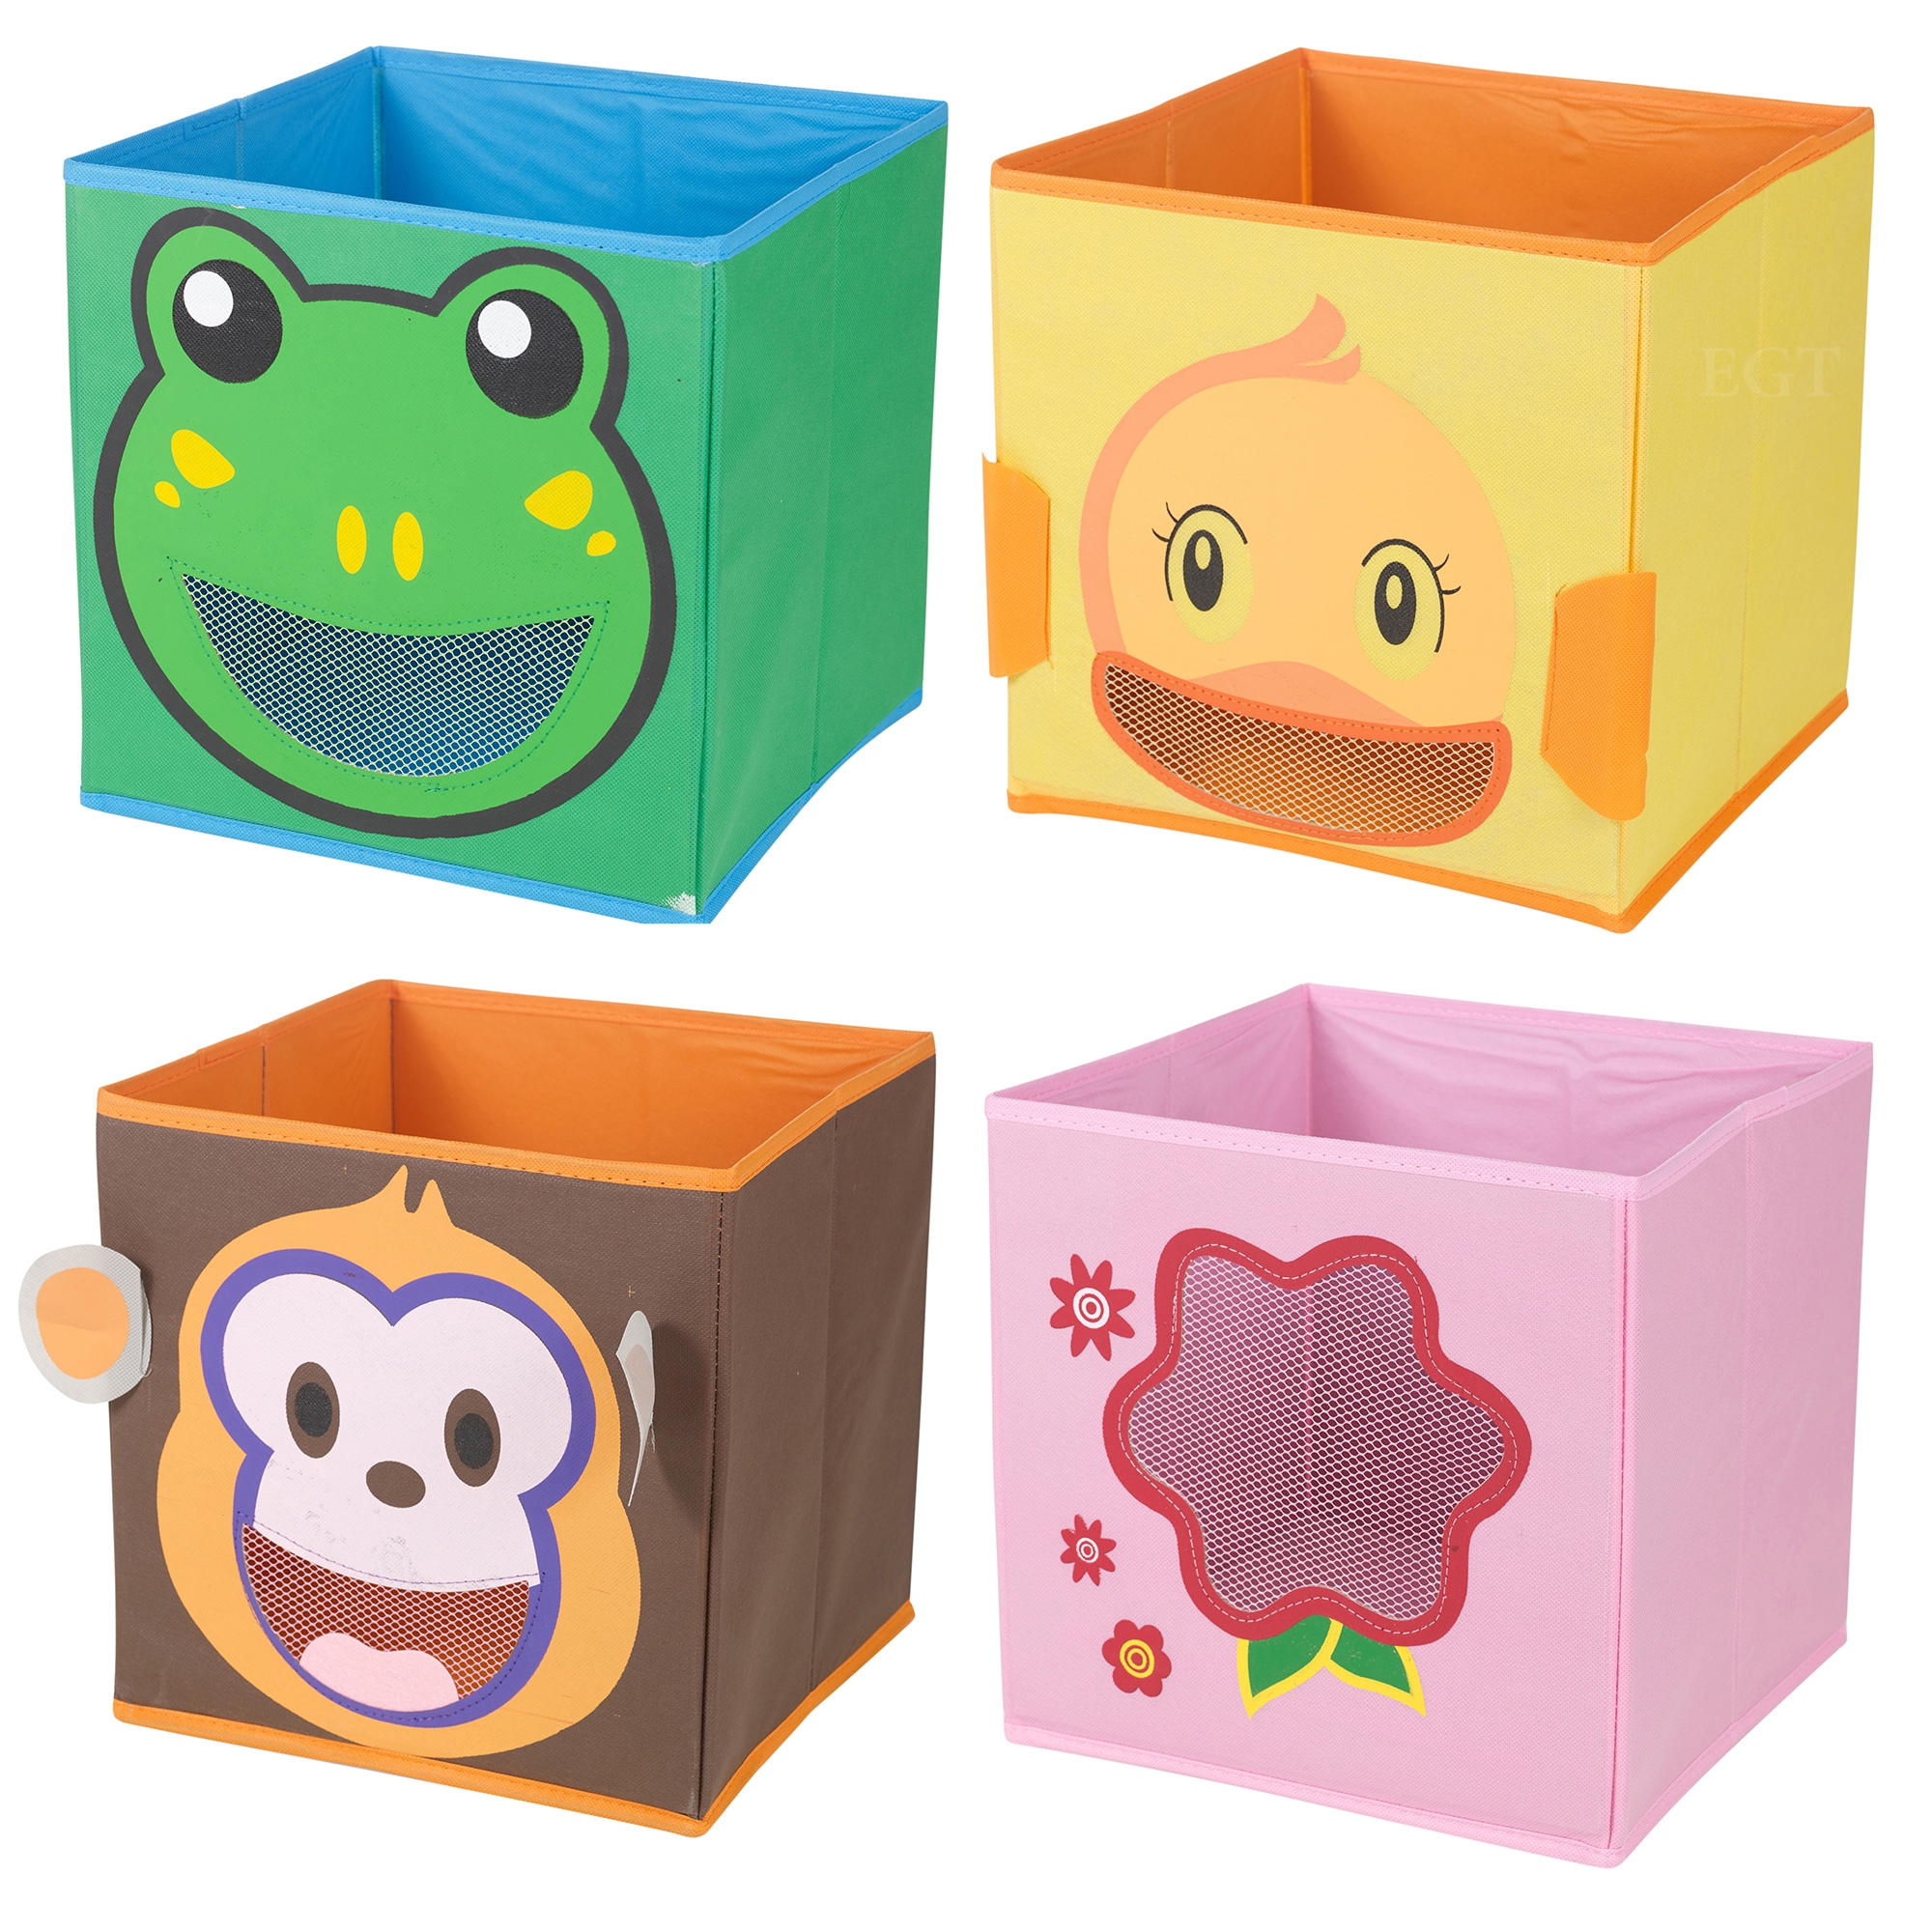 Storage units are great, as they come in a range of sizes and can also be used with or without removable storage boxes, allowing you to use them for a variety of purposes. Our popular Wooden Toy Box has been designed with small fingers in mind, with built-in compression hinges to enable soft closing and avoiding injuriies.